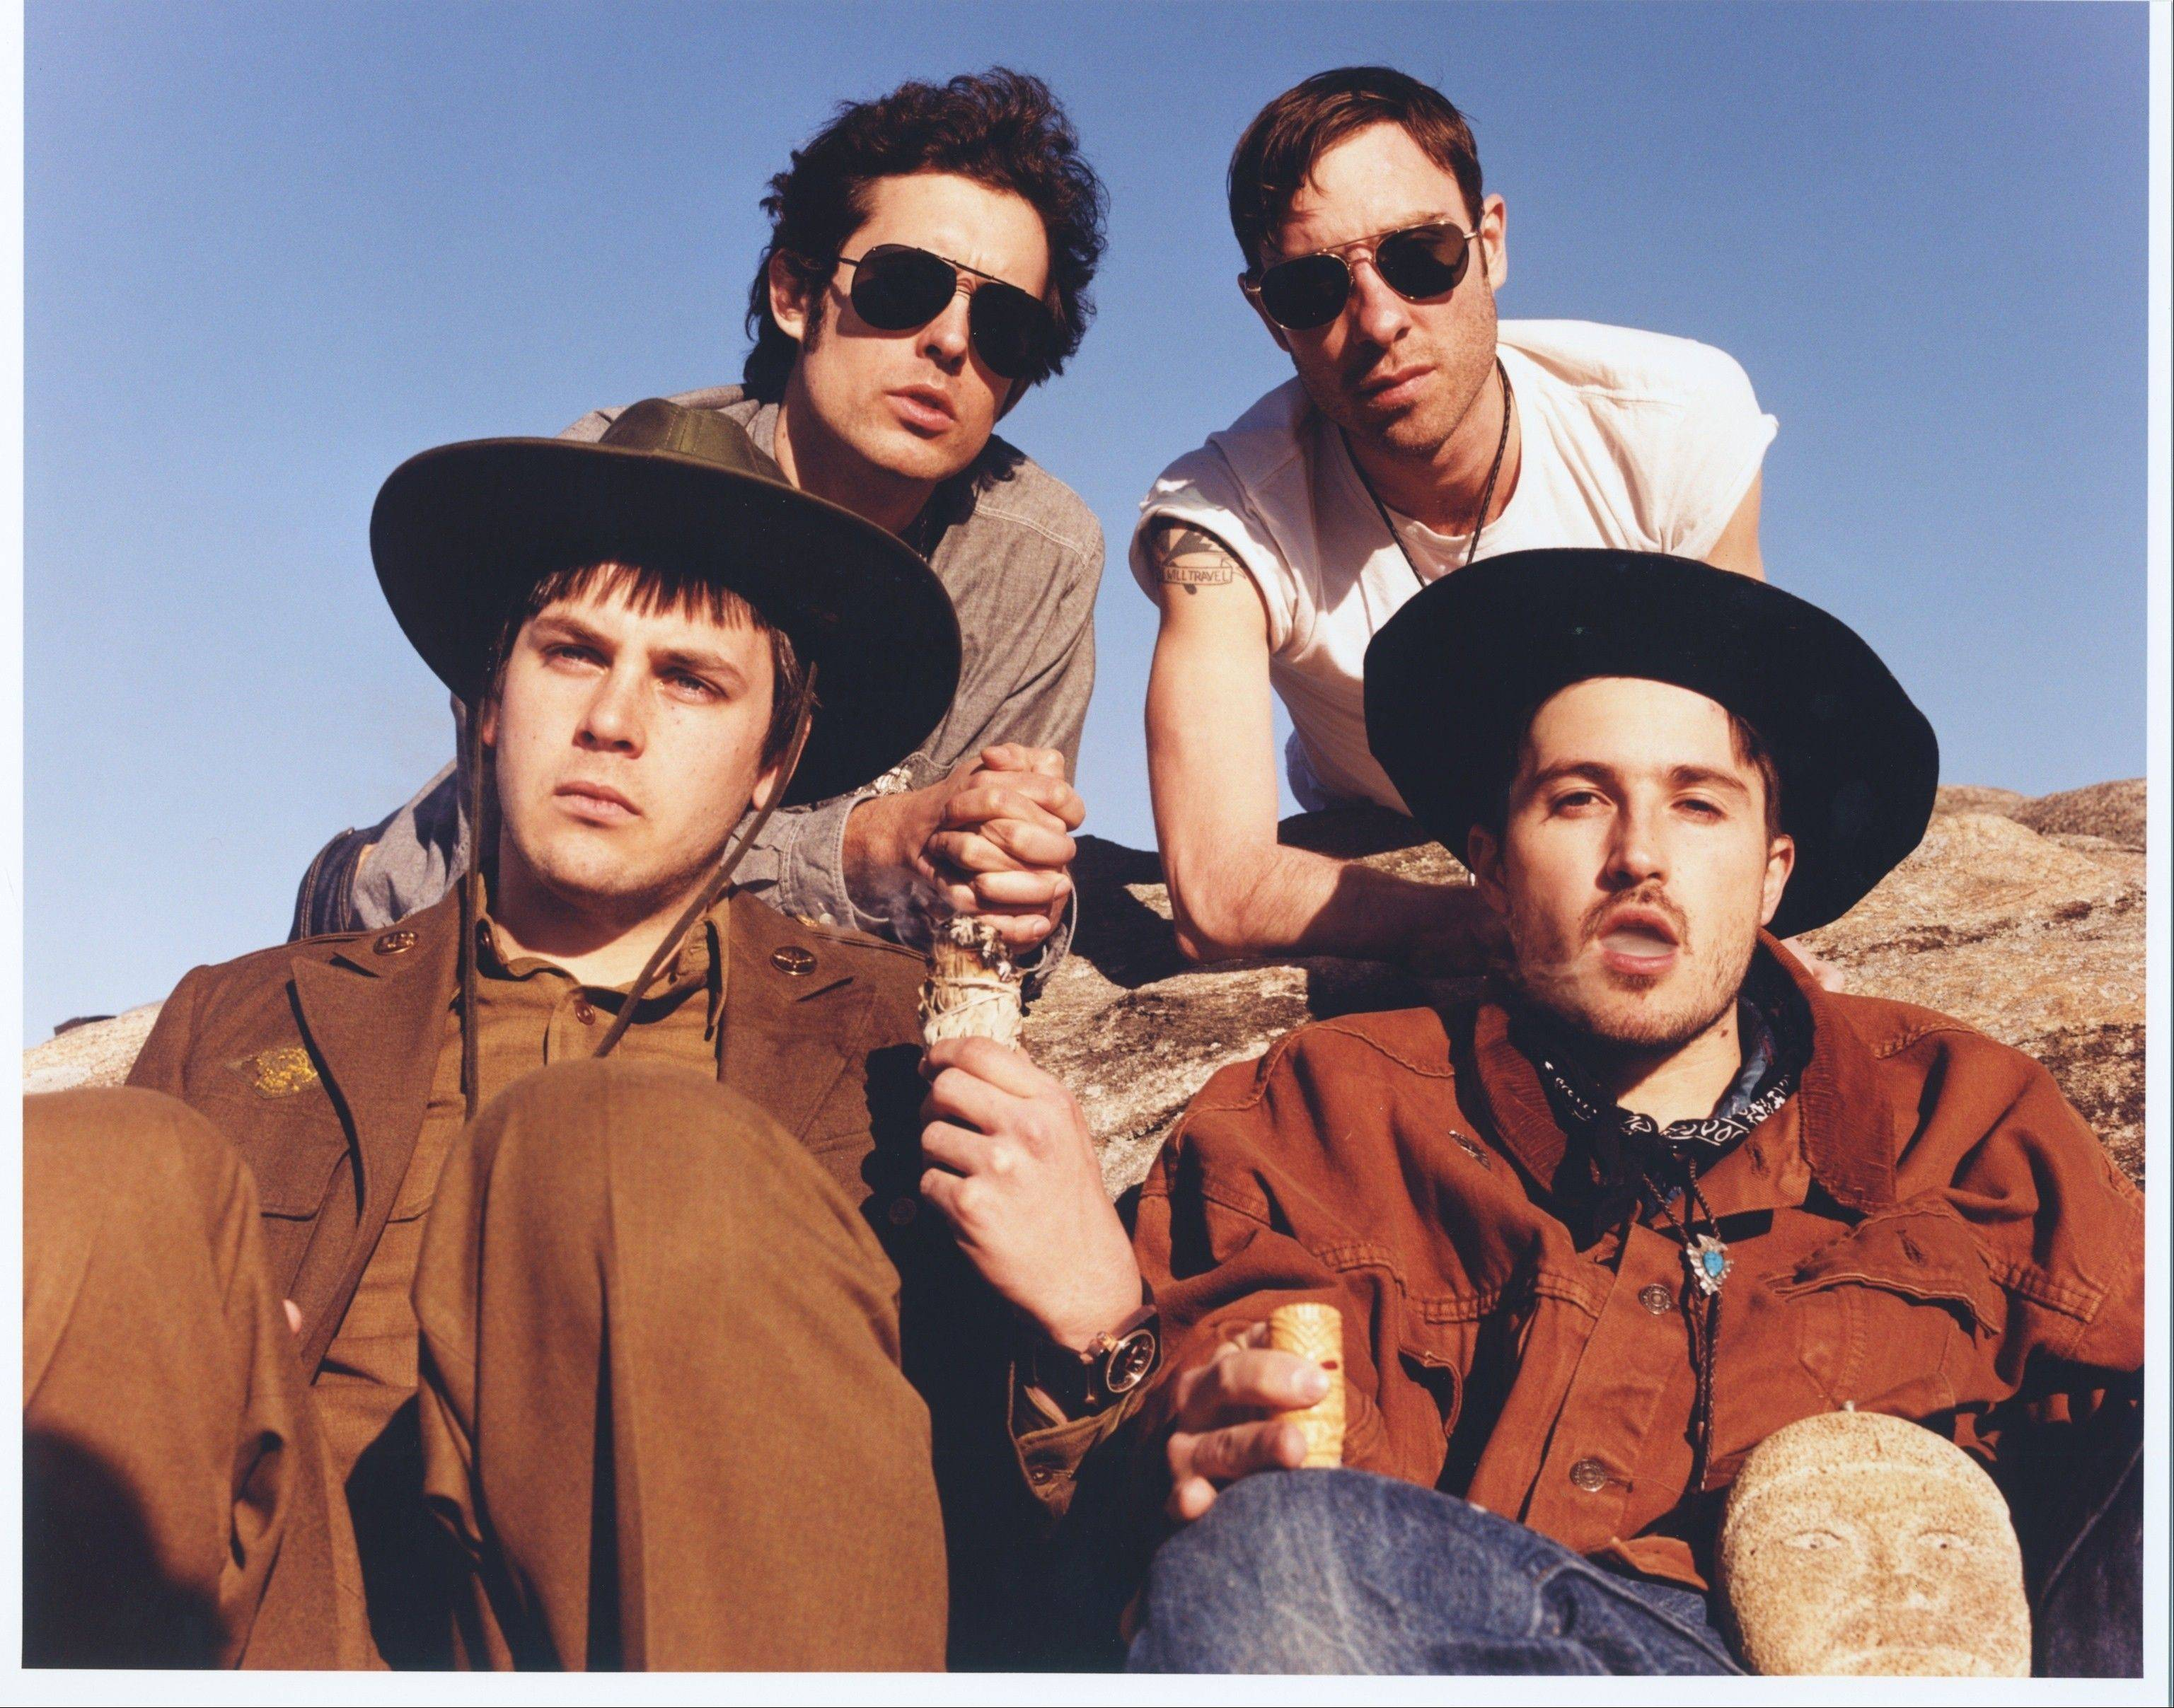 Like gritty grimy rock 'n' roll? The Black Lips will deliver just that at Lollapalooza.